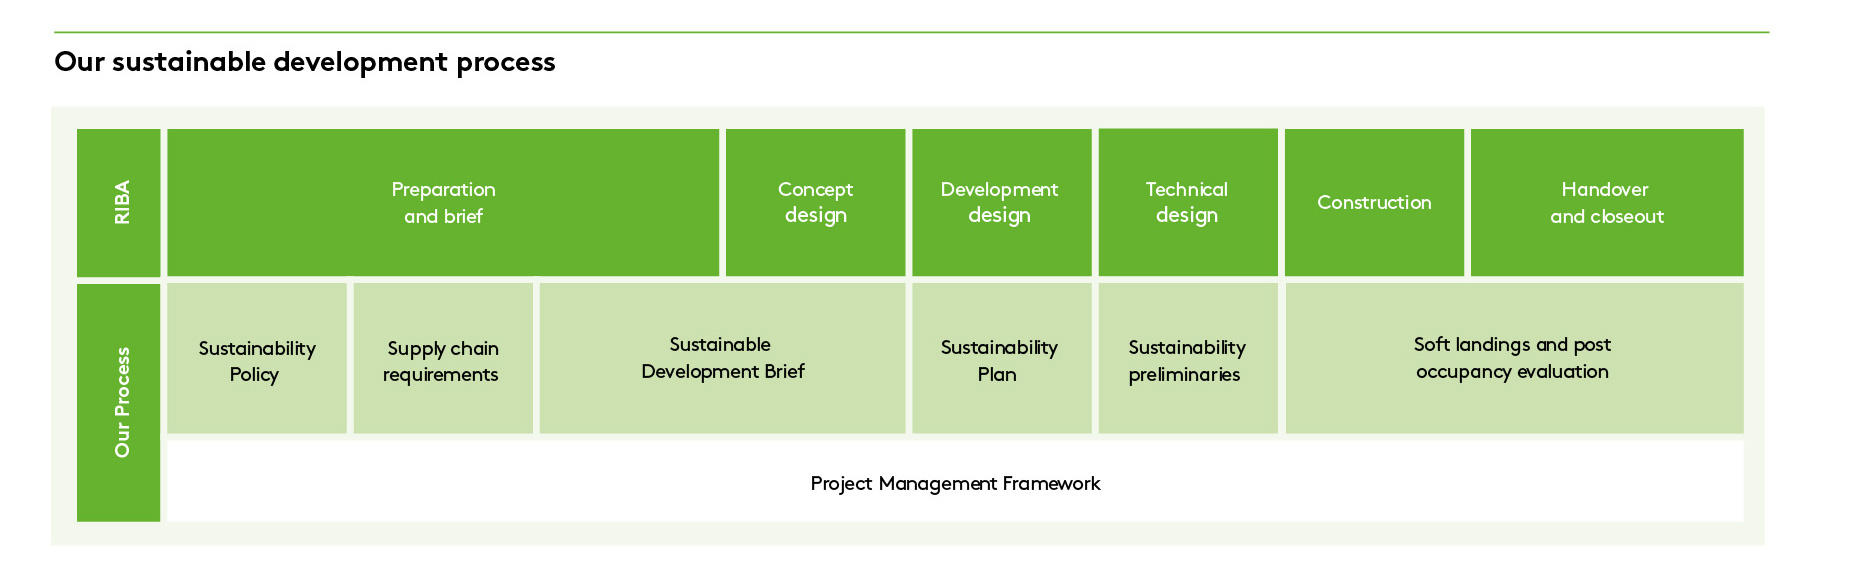 Sustainable development process, Landsec